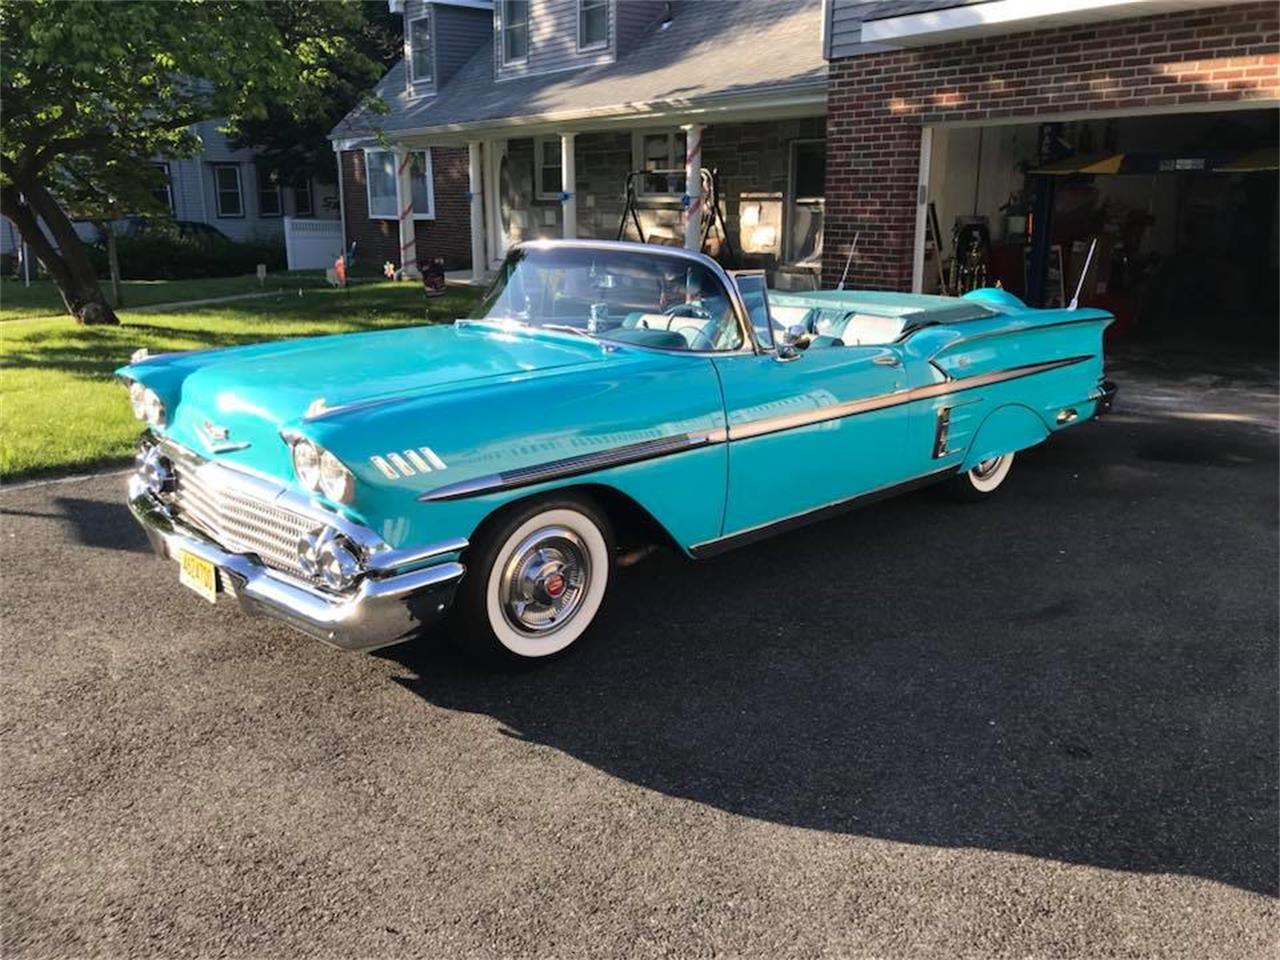 1958 Chevrolet Impala (CC-1219455) for sale in Mill Hall, Pennsylvania